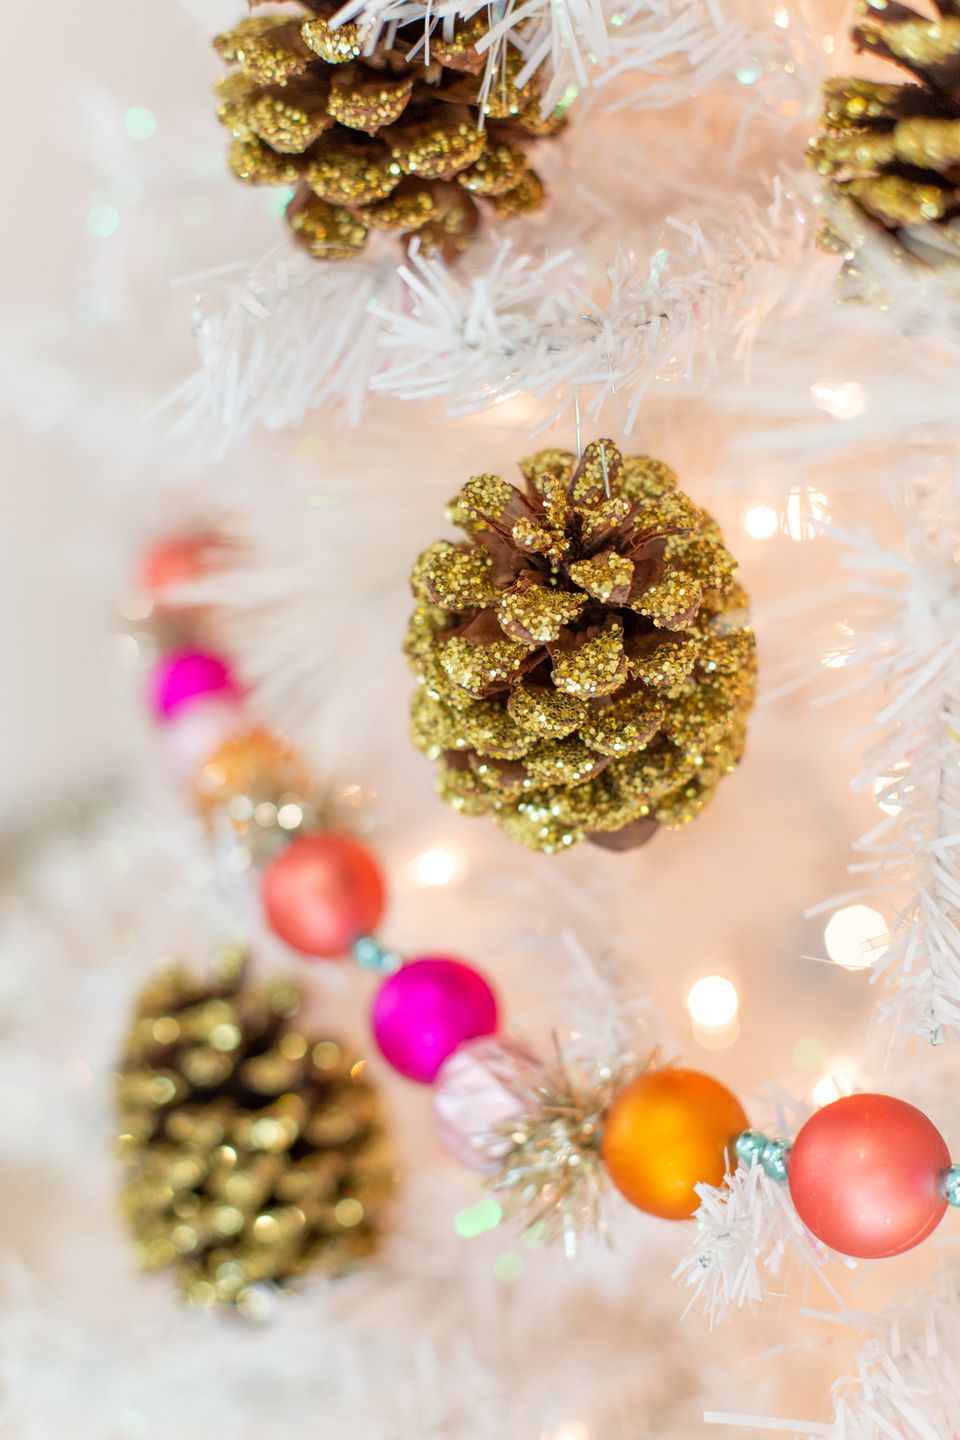 Pine Cone Christmas Ornaments To Make.How To Make Glitter Pine Cone Ornaments